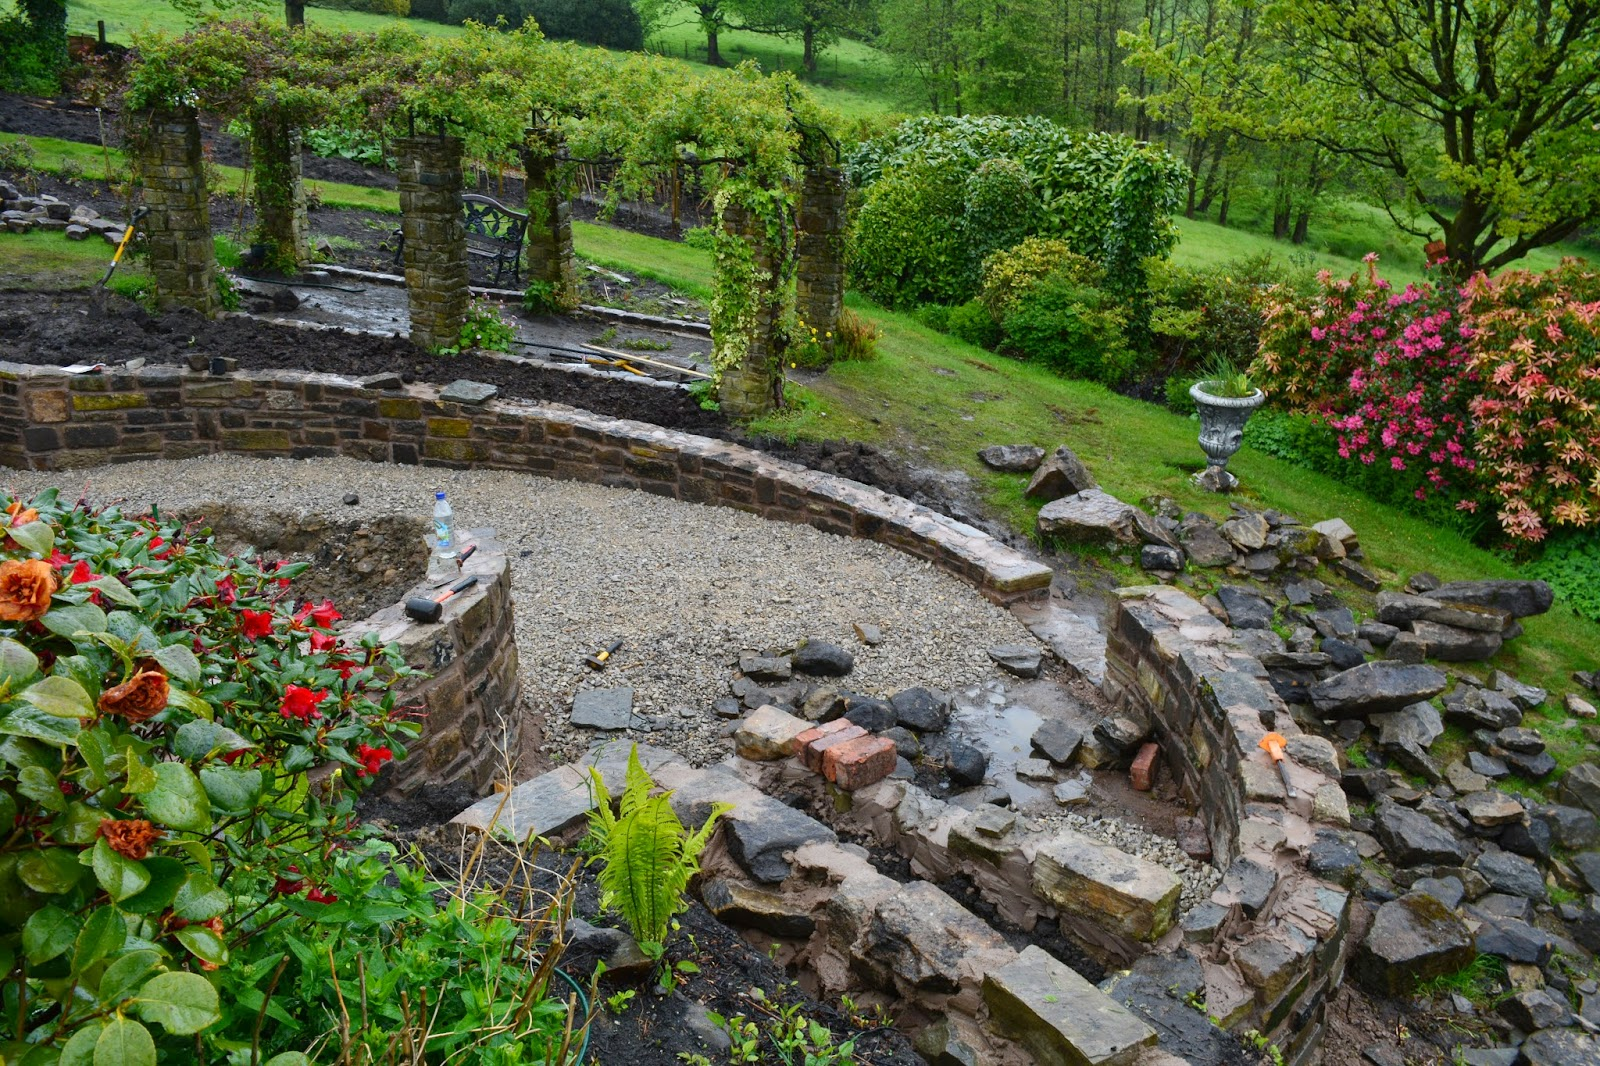 The Weather Has Changed Bringing Rain But Work Continues With Walls To Lower Pond Areas Now Taking Shape And Timber Frame Accommodate Inset Seats